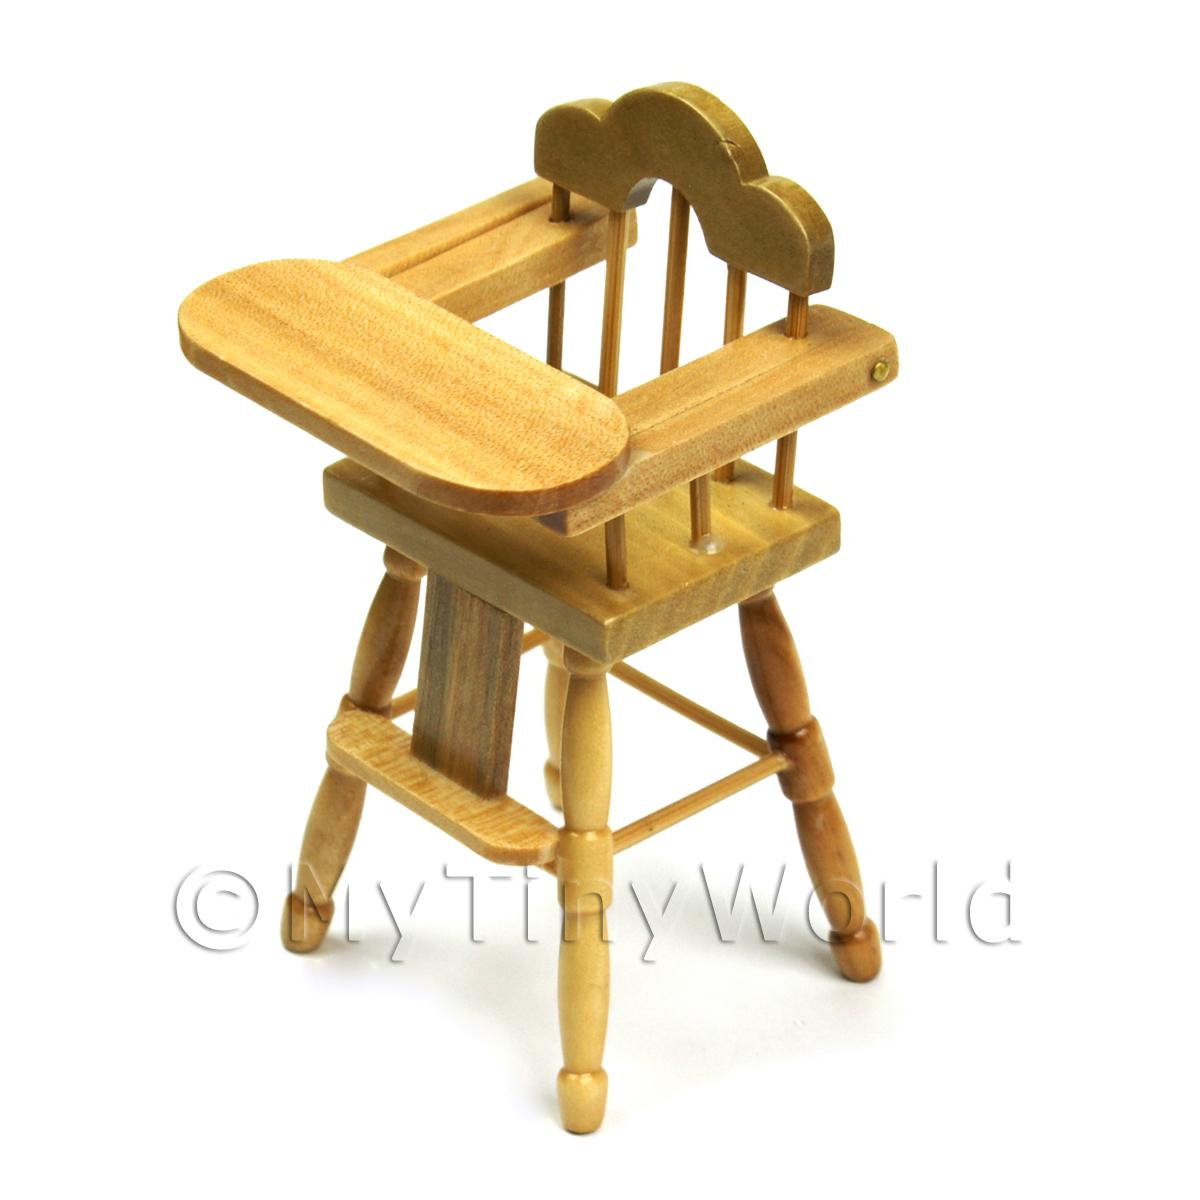 Dolls House Miniature Childrens Pine High Chair  sc 1 st  MyTinyWorld & Dolls House Miniature Furniture (Value) - Dolls House Miniature ...